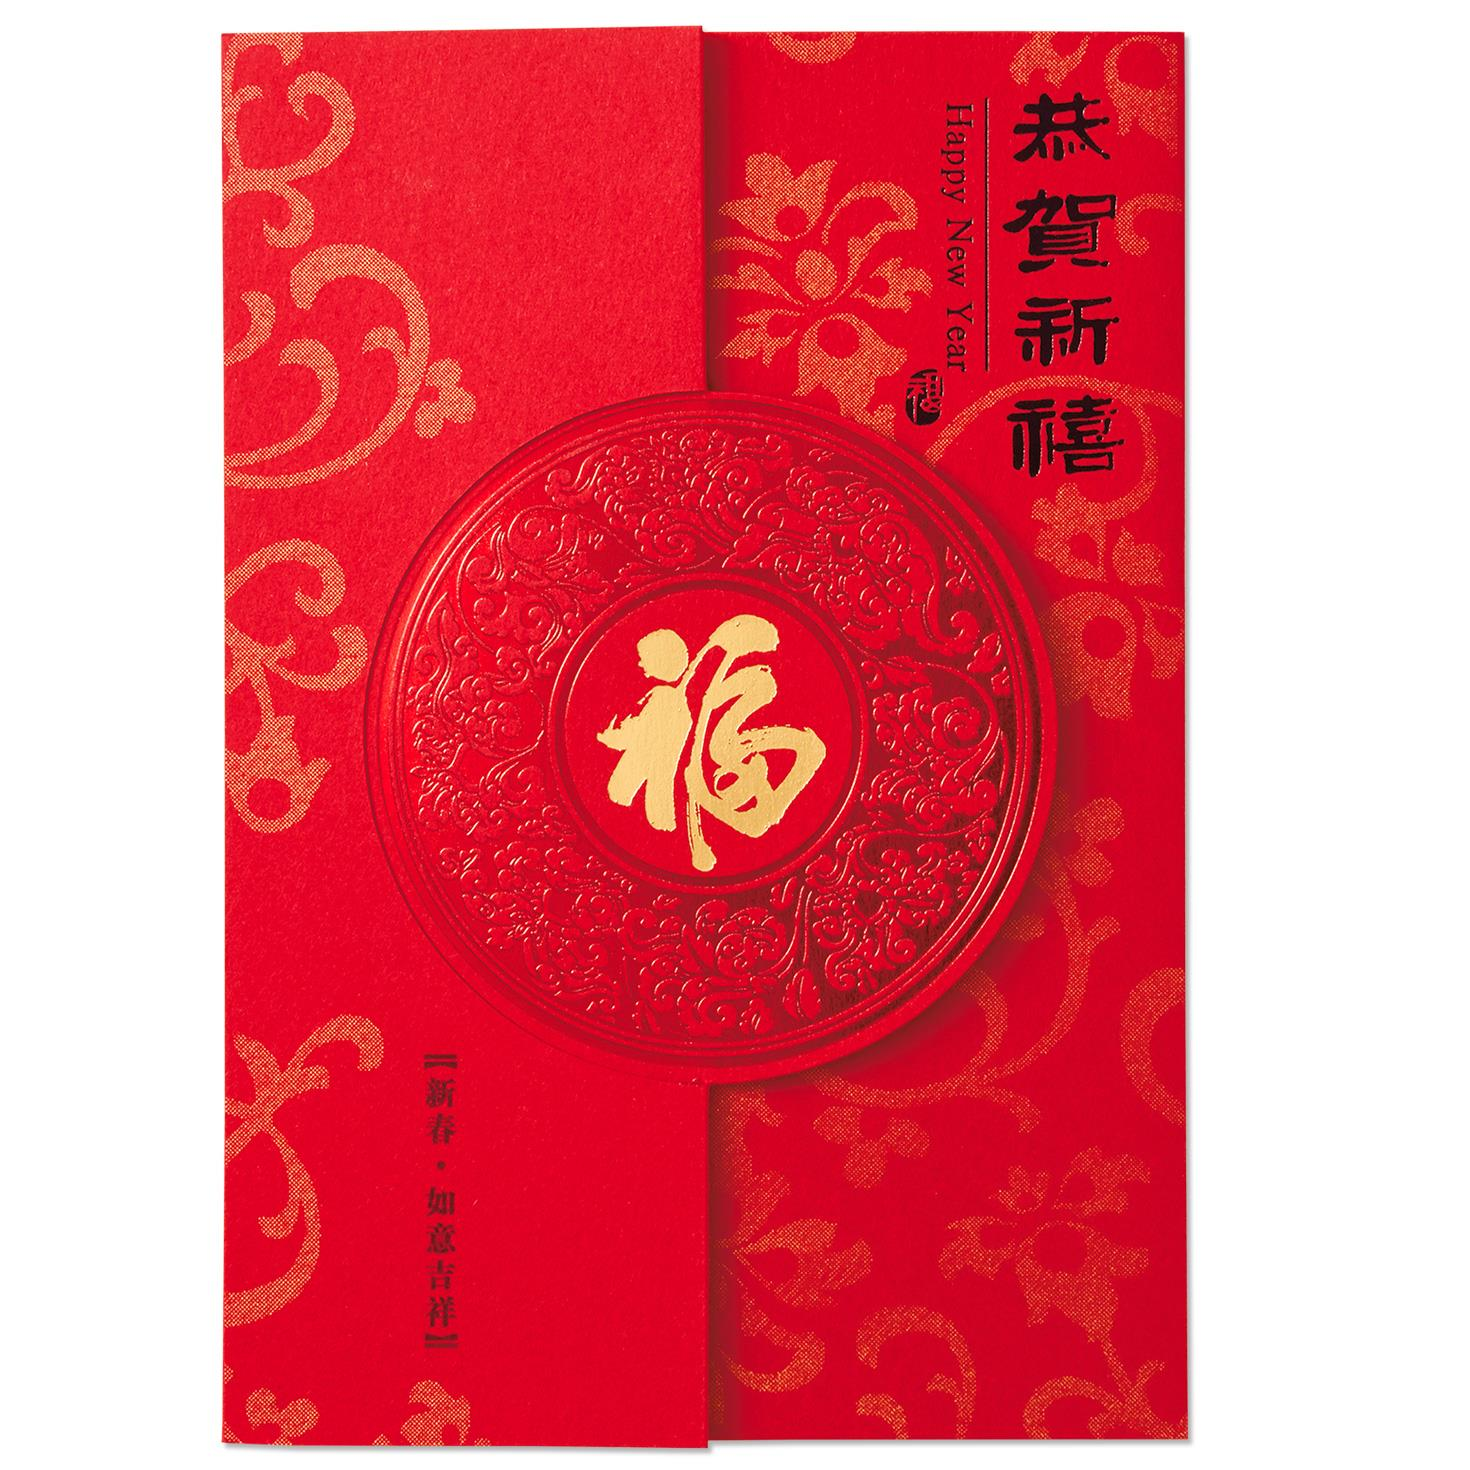 Happiness Prosperity and Good Luck 2018 Lunar New Year Card